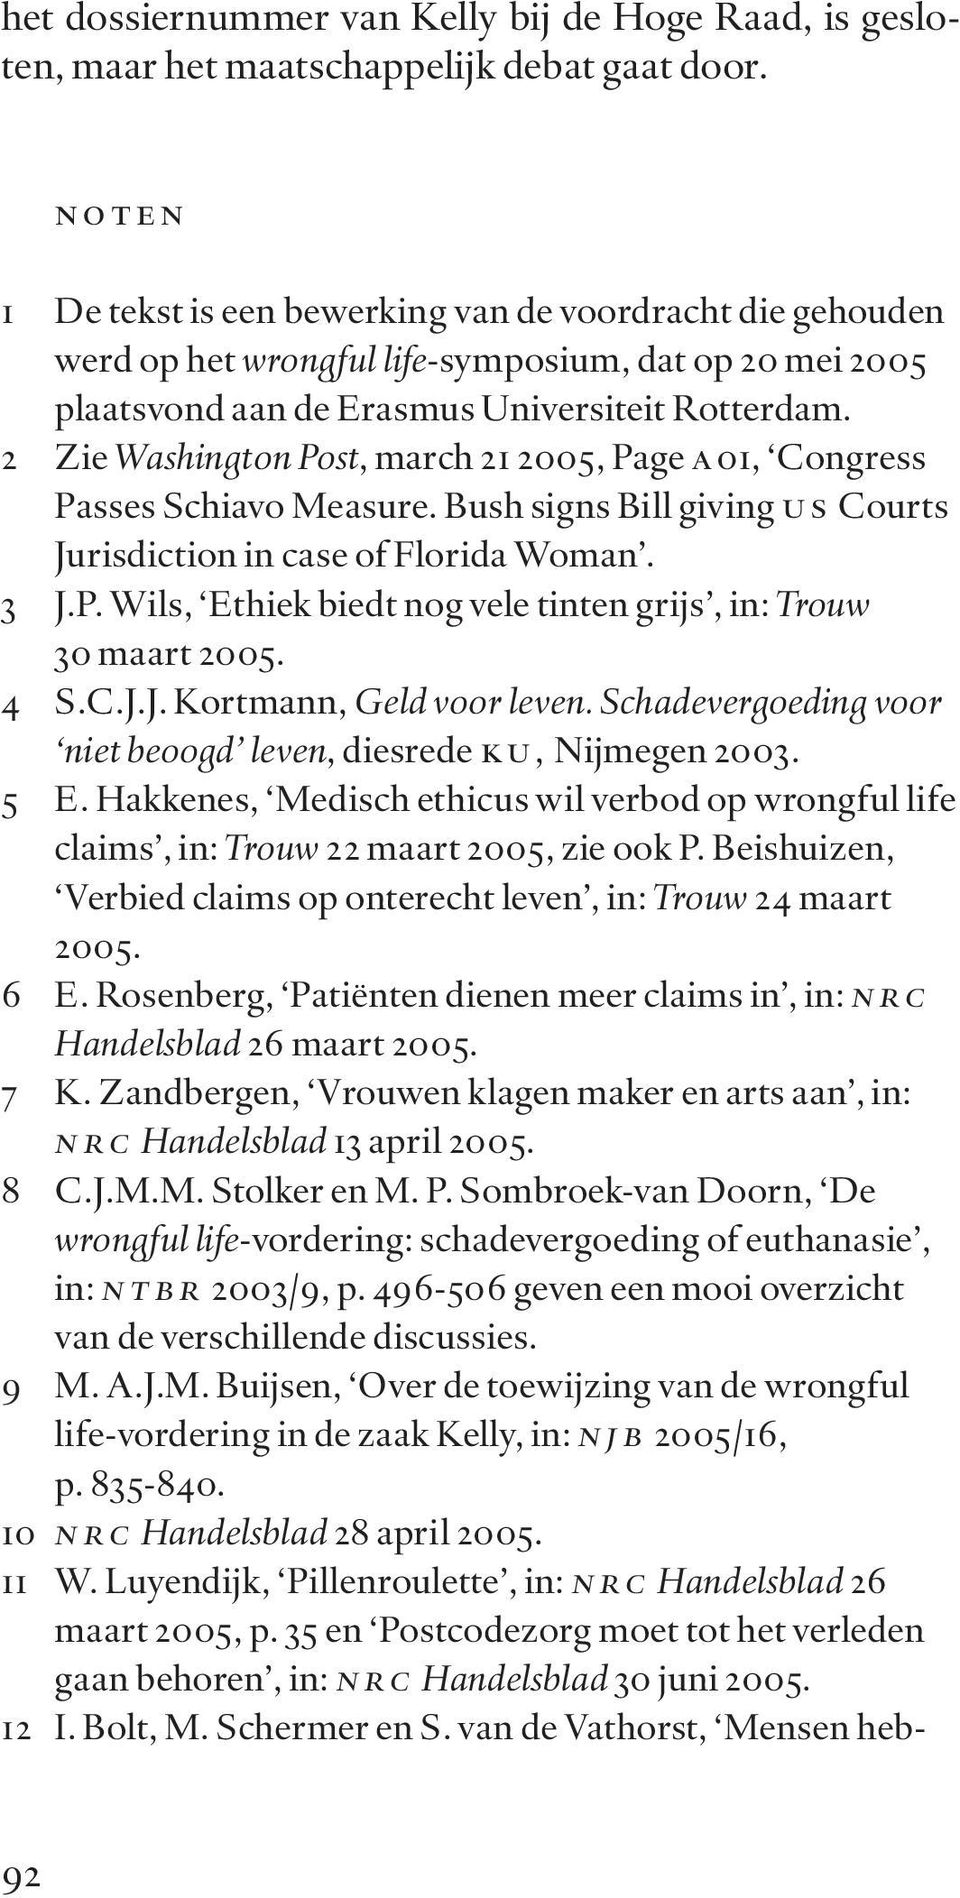 2 Zie Washington Post, march 21 2005, Page a 01, Congress Passes Schiavo Measure. Bush signs Bill giving u s Courts Jurisdiction in case of Florida Woman. 3 J.P. Wils, Ethiek biedt nog vele tinten grijs, in: Trouw 30 maart 2005.